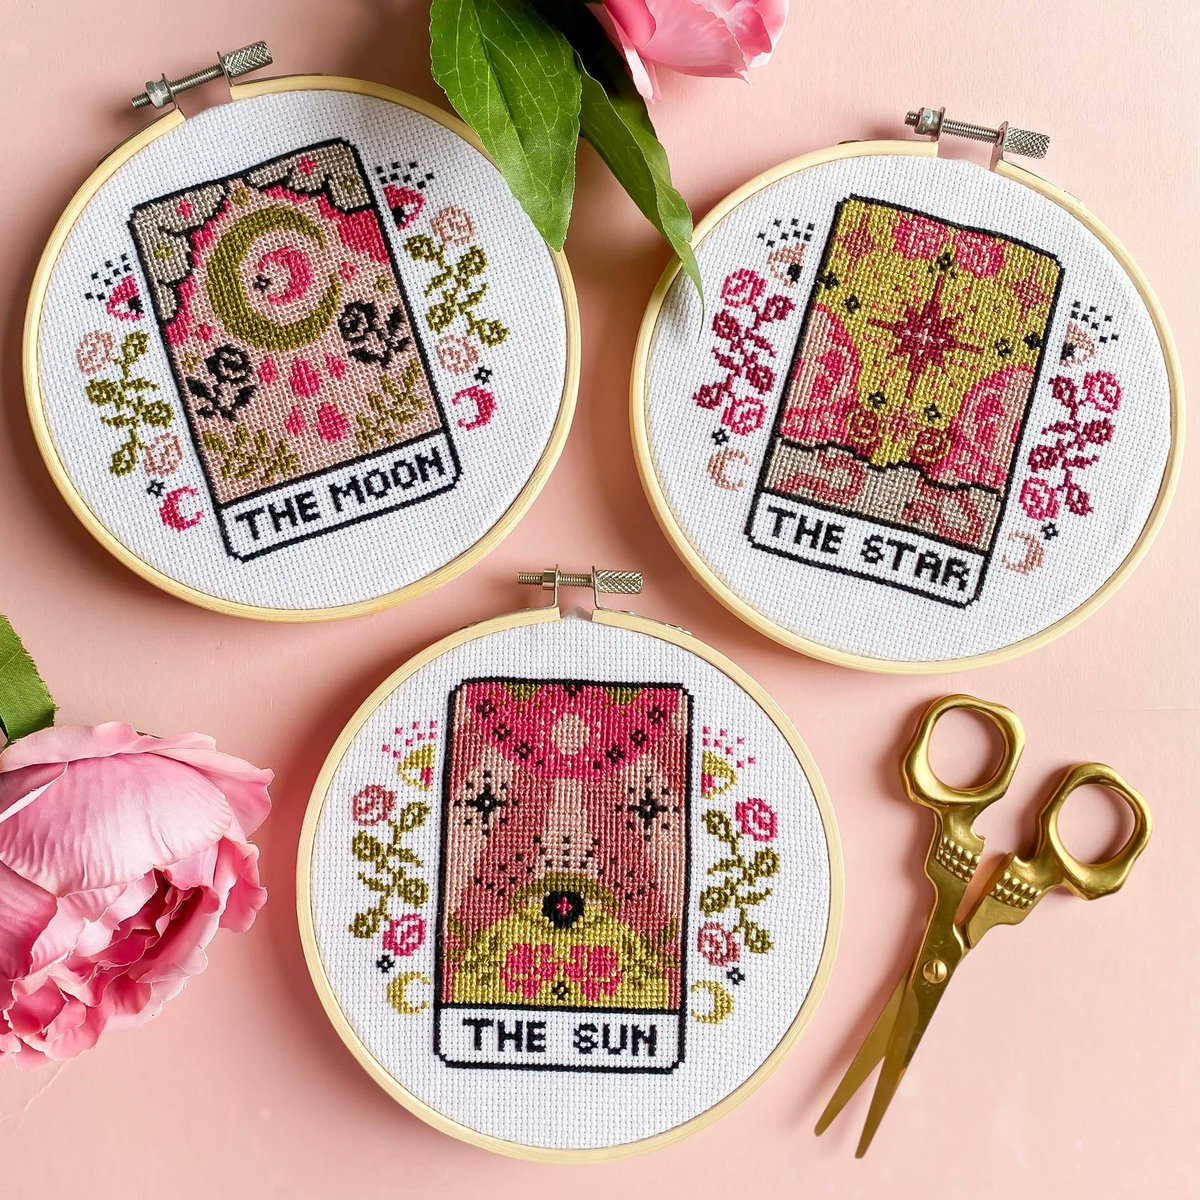 Absolutely psyched for the celestial cross-stitch kit I just ordered! 🔮✨ etsy.com/listing/104949…